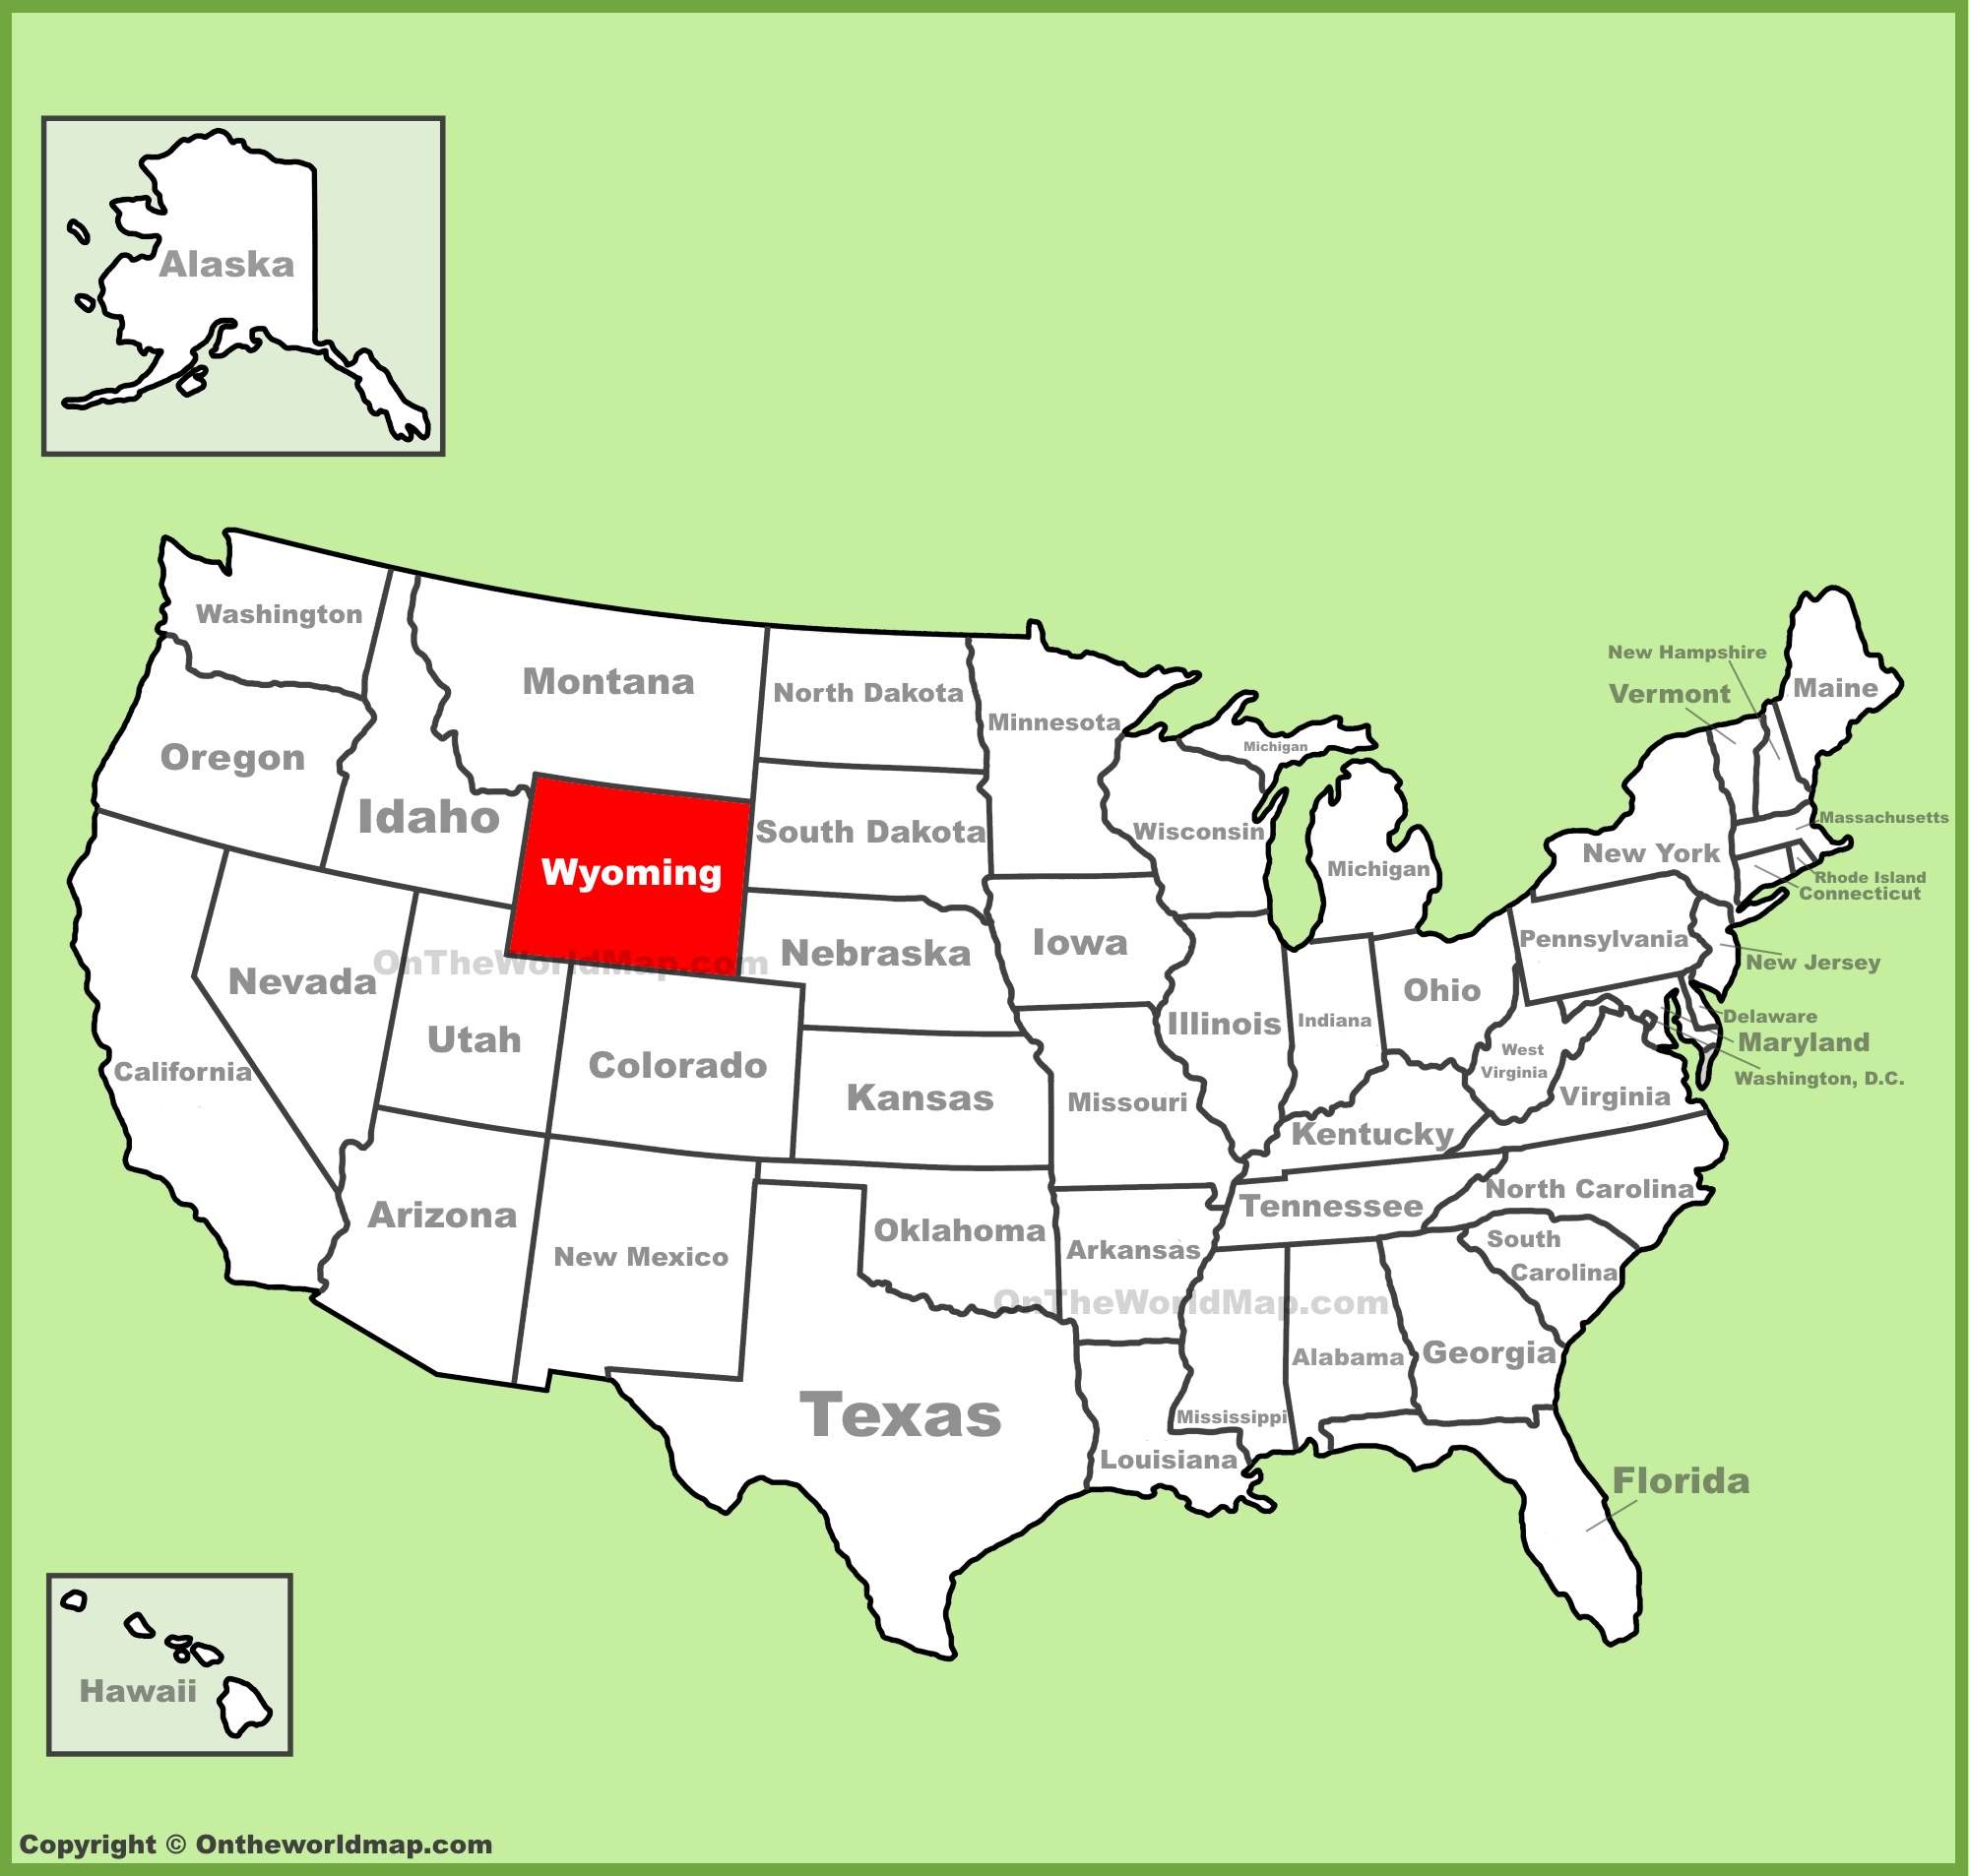 Show Me A Map Of Wyoming Wyoming State Maps | USA | Maps of Wyoming (WY)